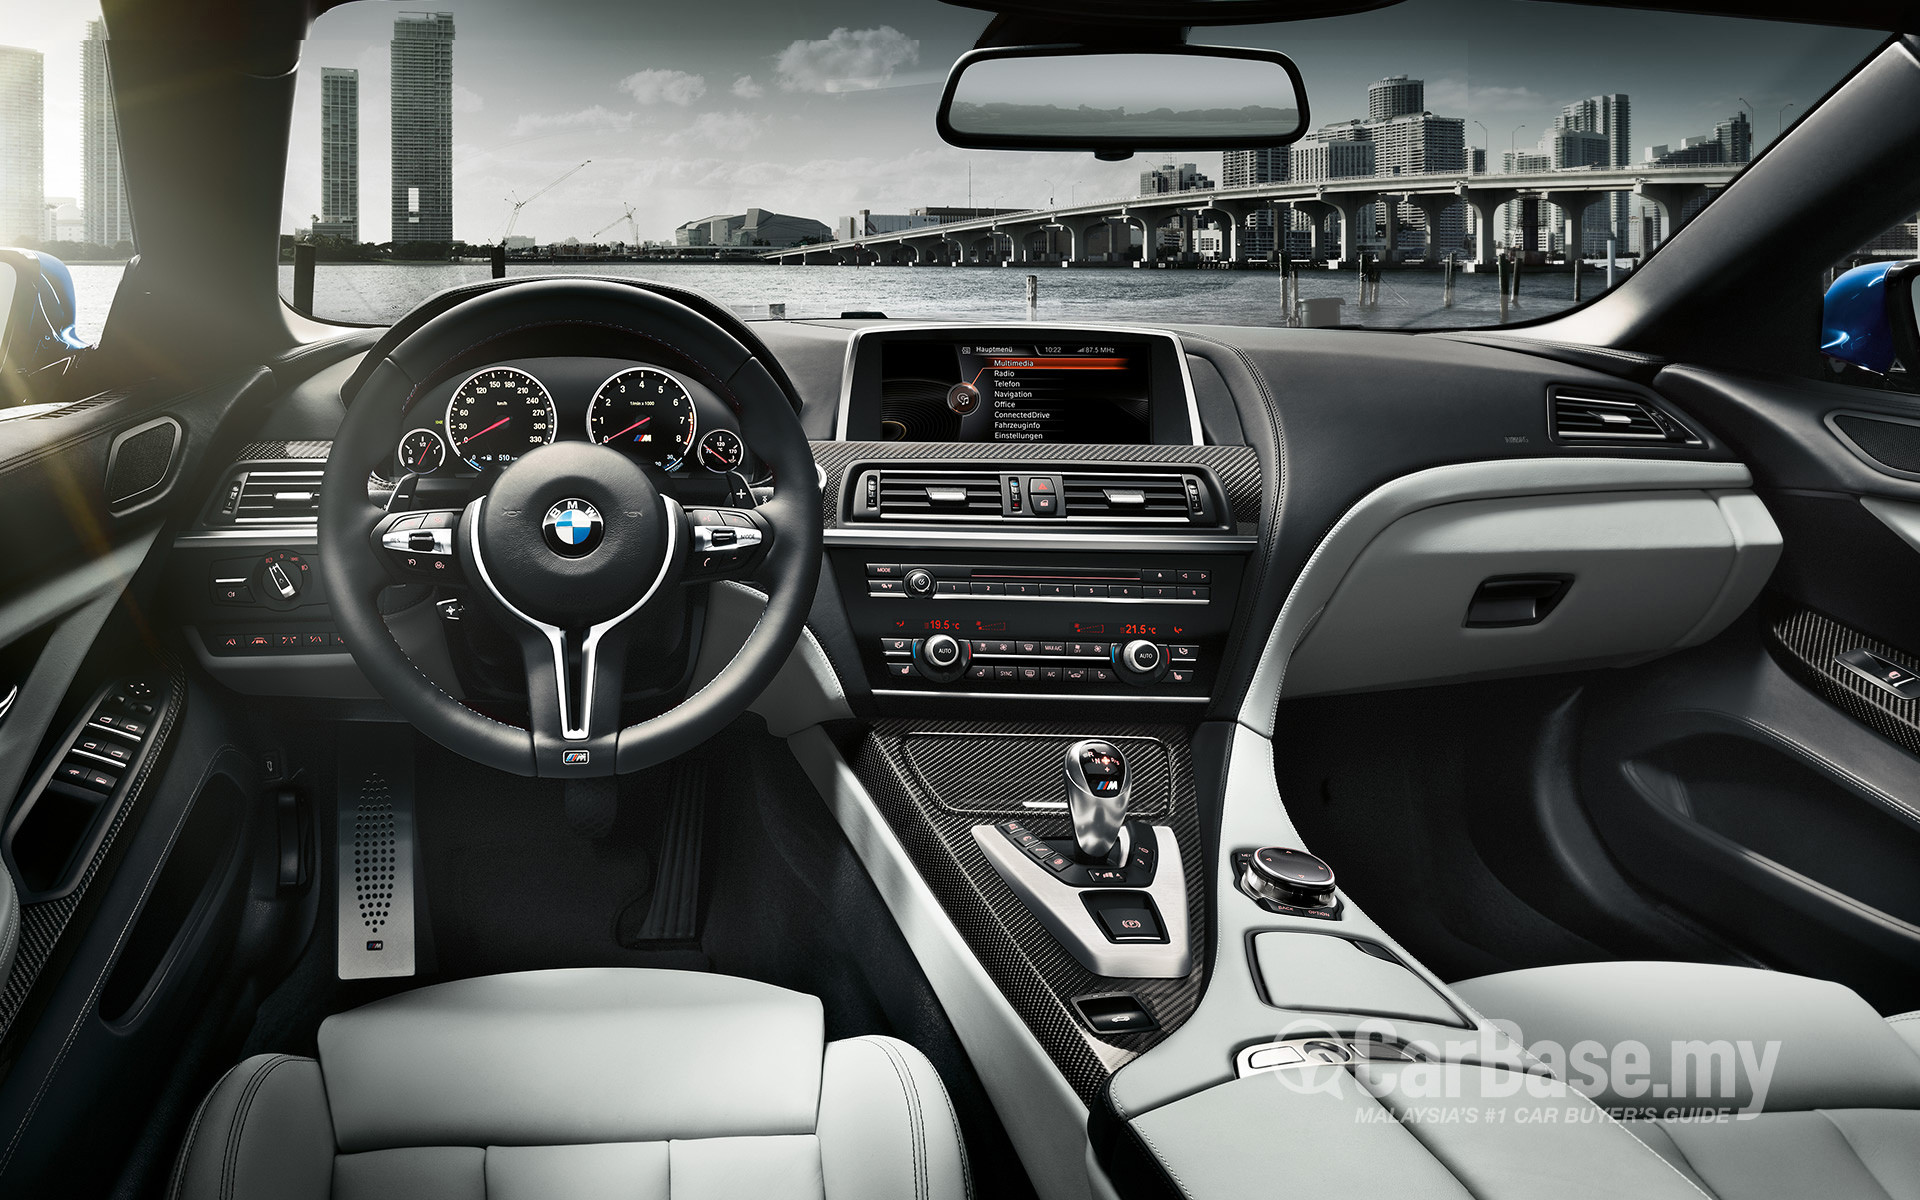 Bmw M6 Coupe F13 2012 Interior Image 6468 In Malaysia Reviews Specs Prices Carbase My